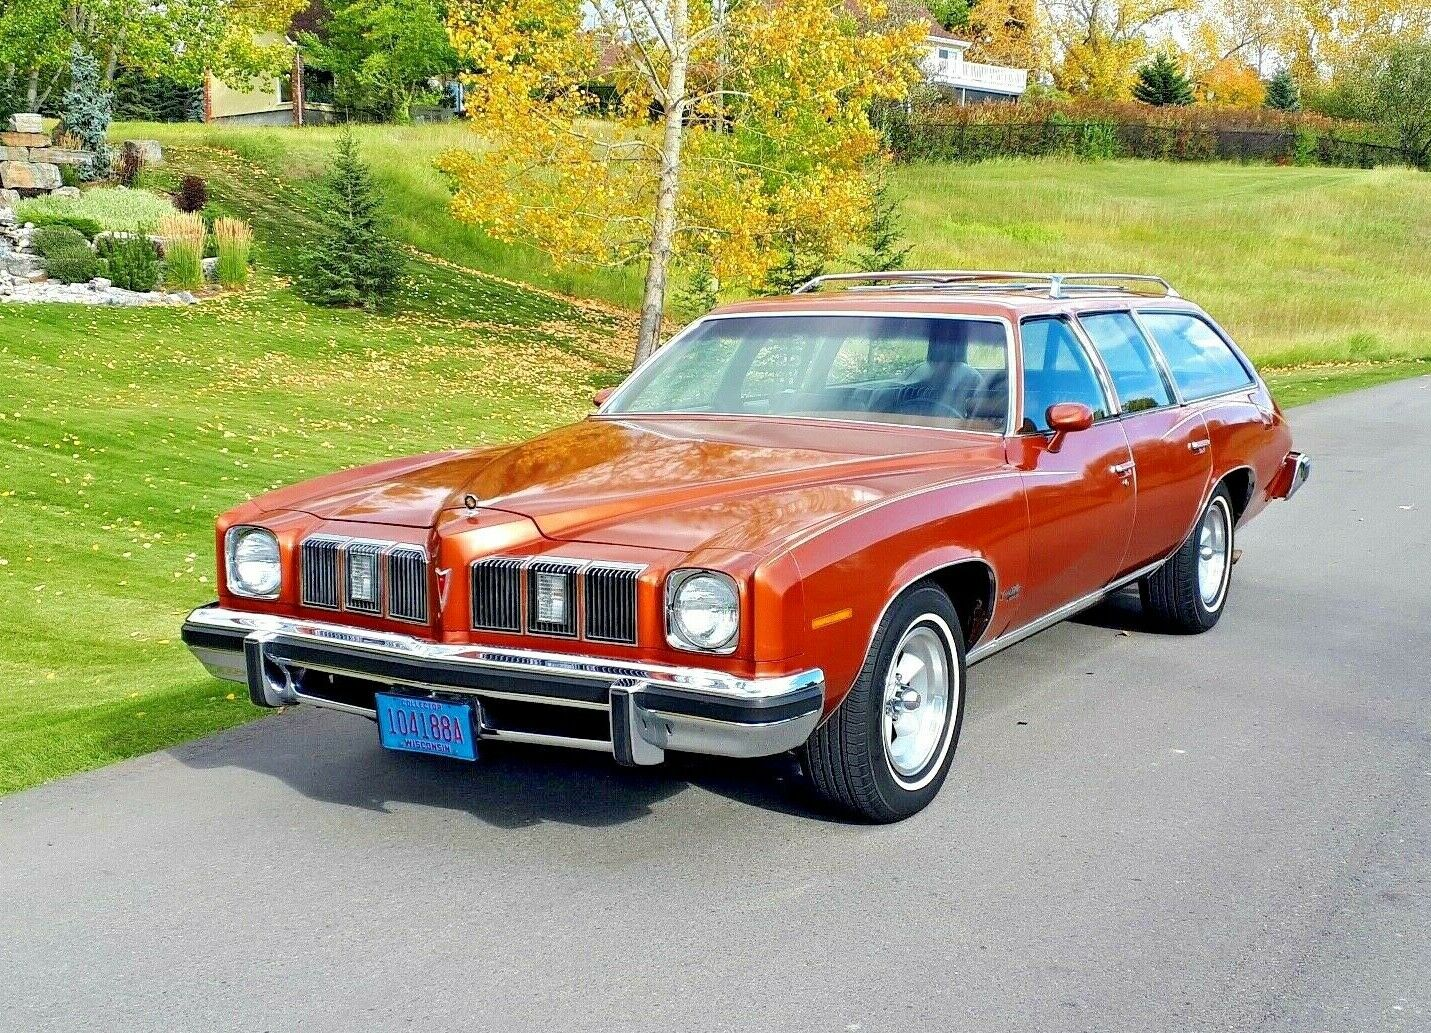 Money No Object: 1975 Pontiac Grand LeMans Safari – Do You Believe In Miracles?